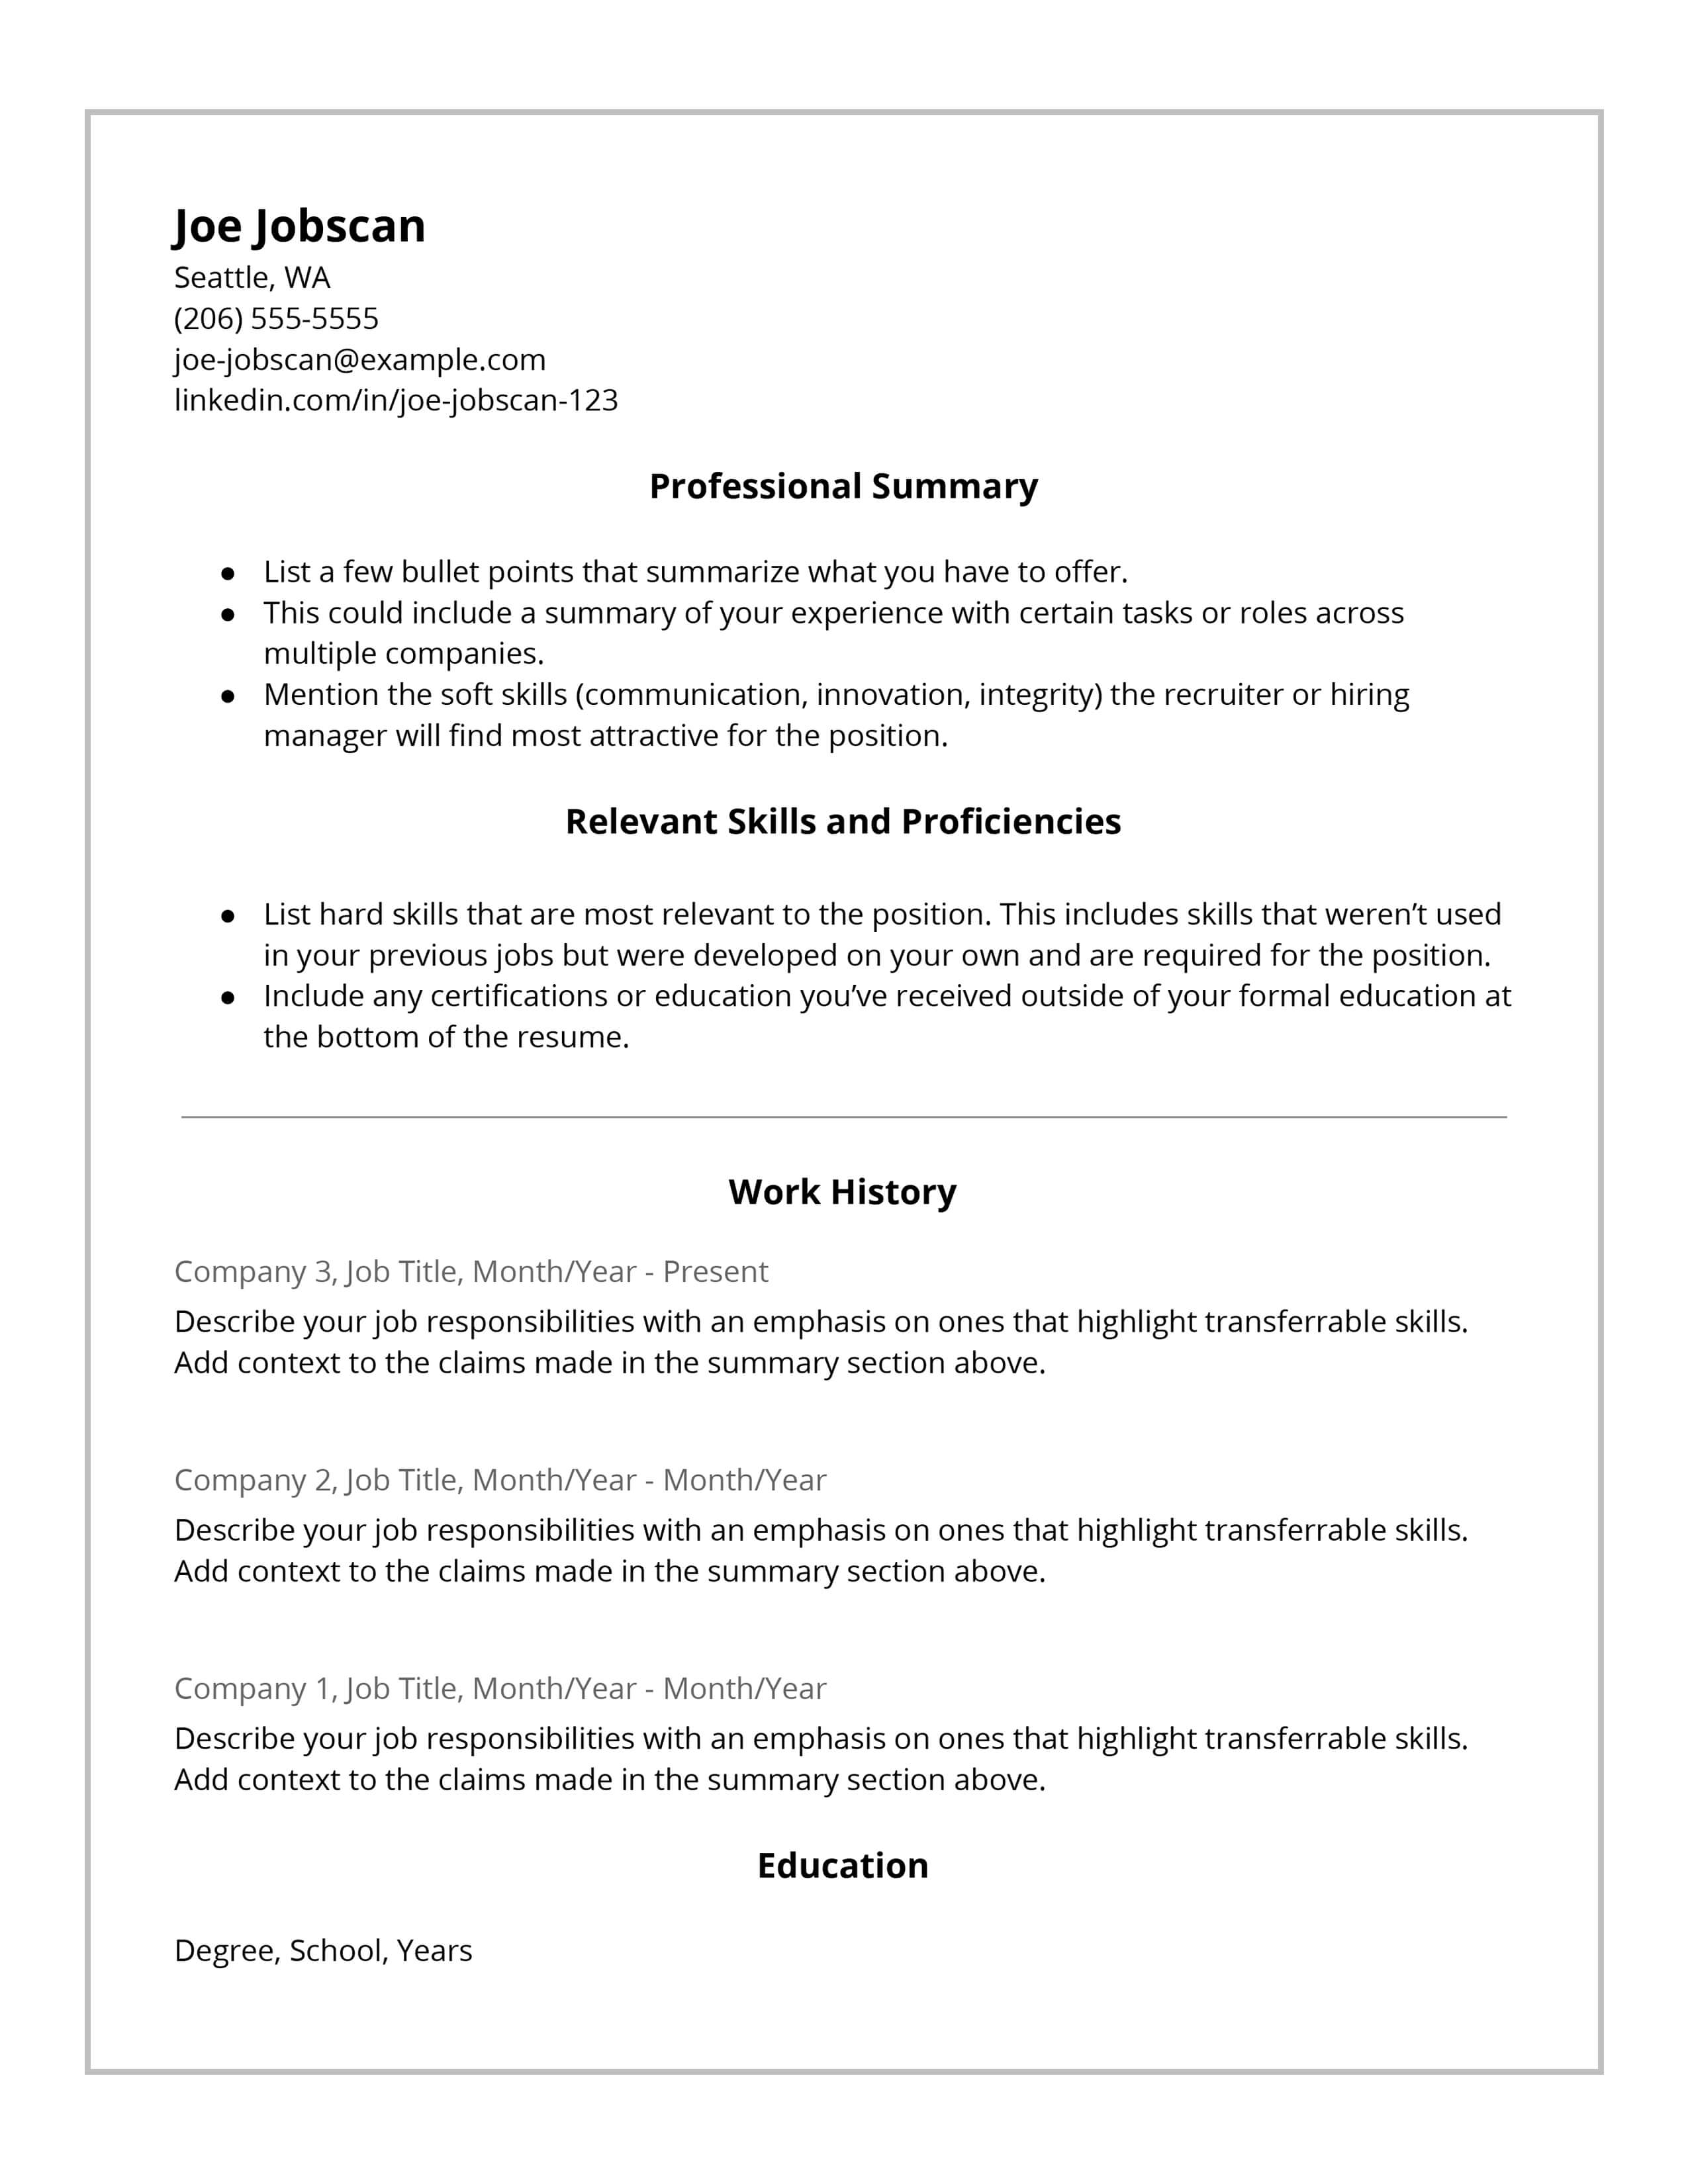 Resume Tips Skills 56 Resume Tips To Transform Your Job Search Jobscan Blog